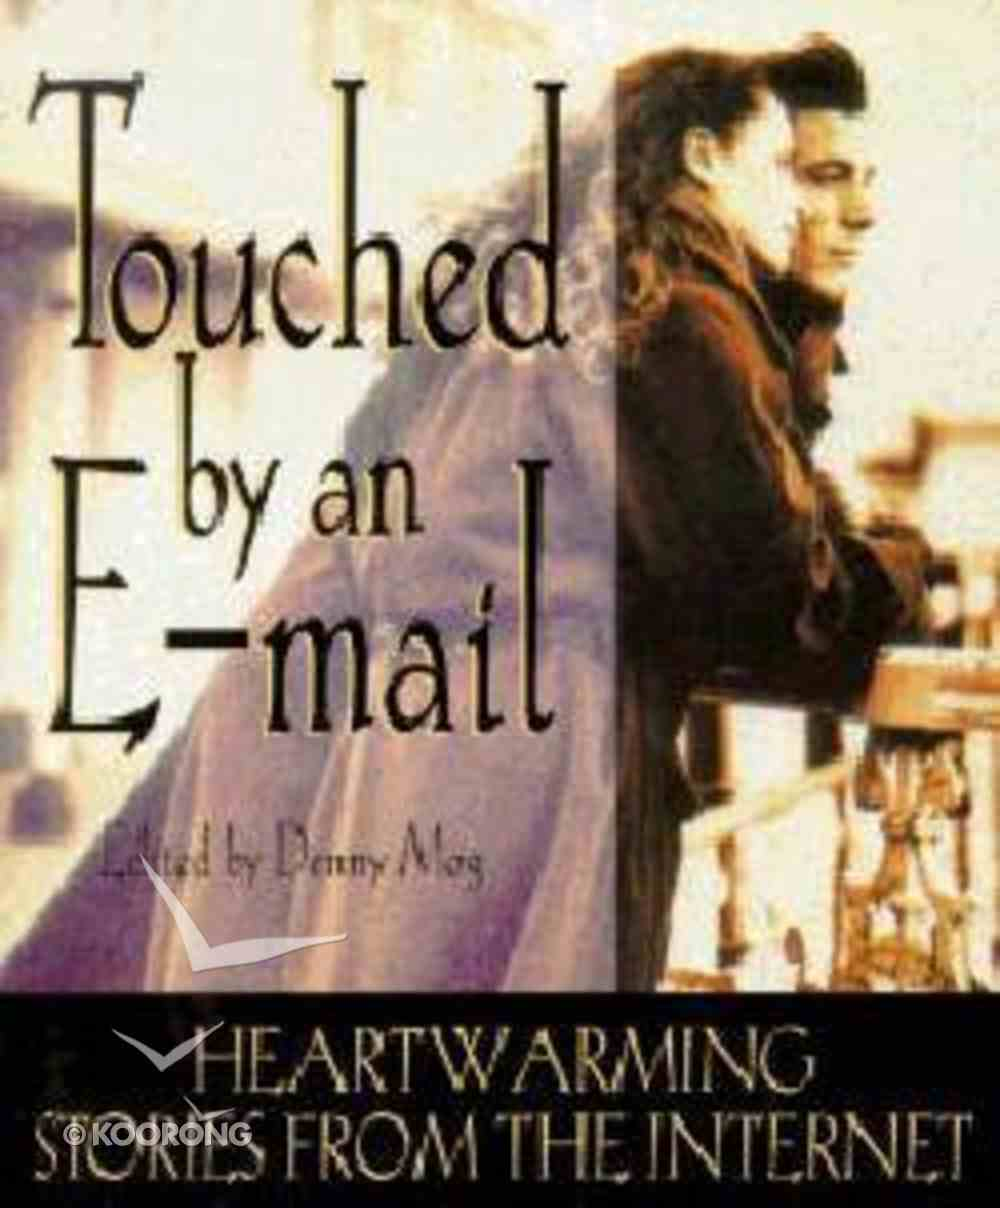 Touched By An E-Mail Paperback